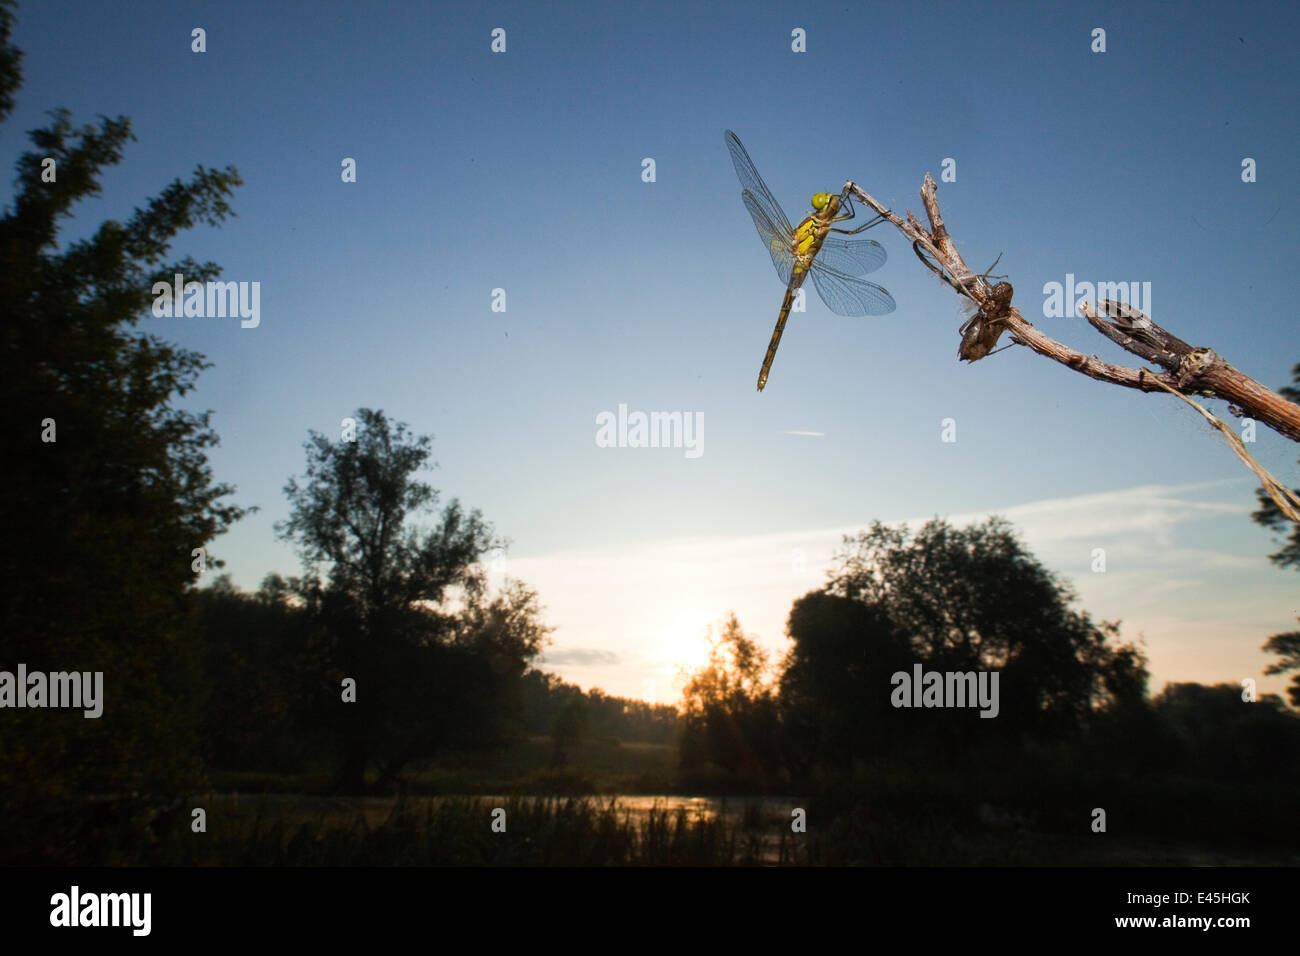 Vagrant darter (Sympetrum vulgatum) on twig with larval case, Gornje Podunavlje Special Nature Reserve, Serbia, - Stock Image